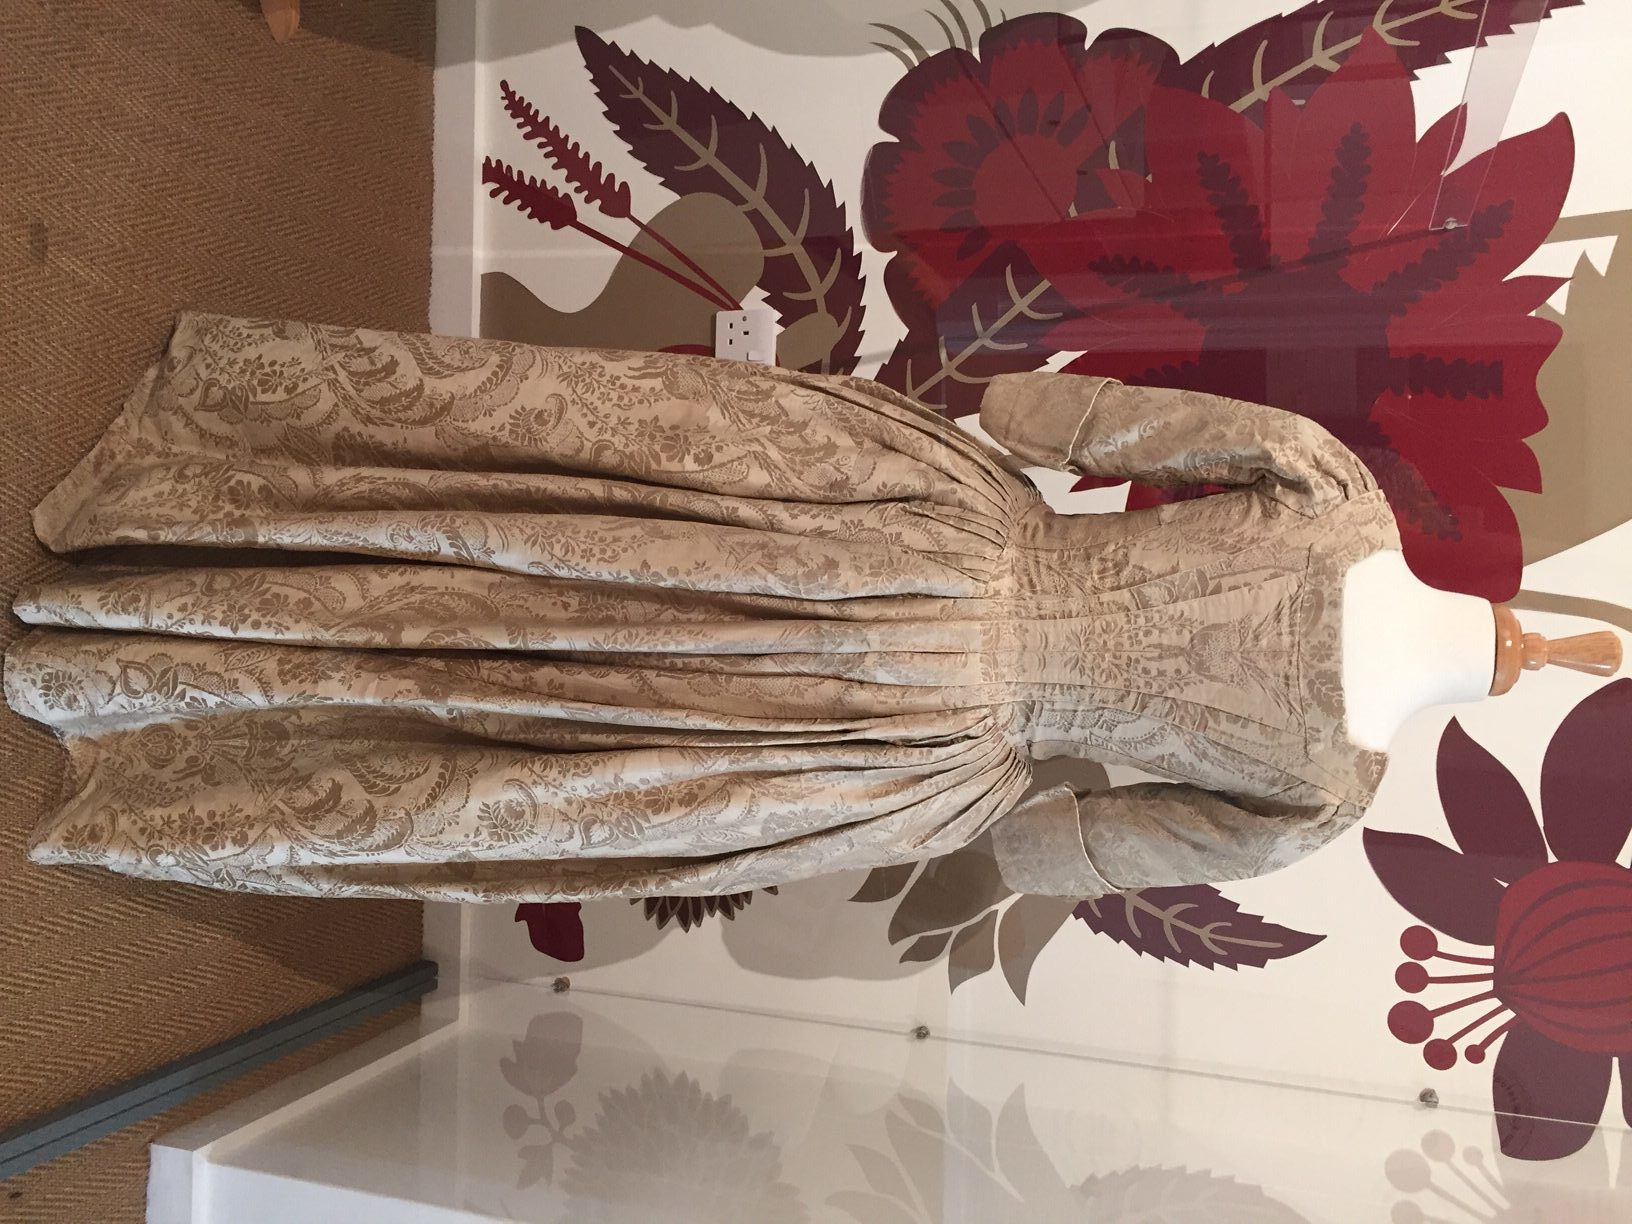 The back of the Lee Ault's silk gown on display